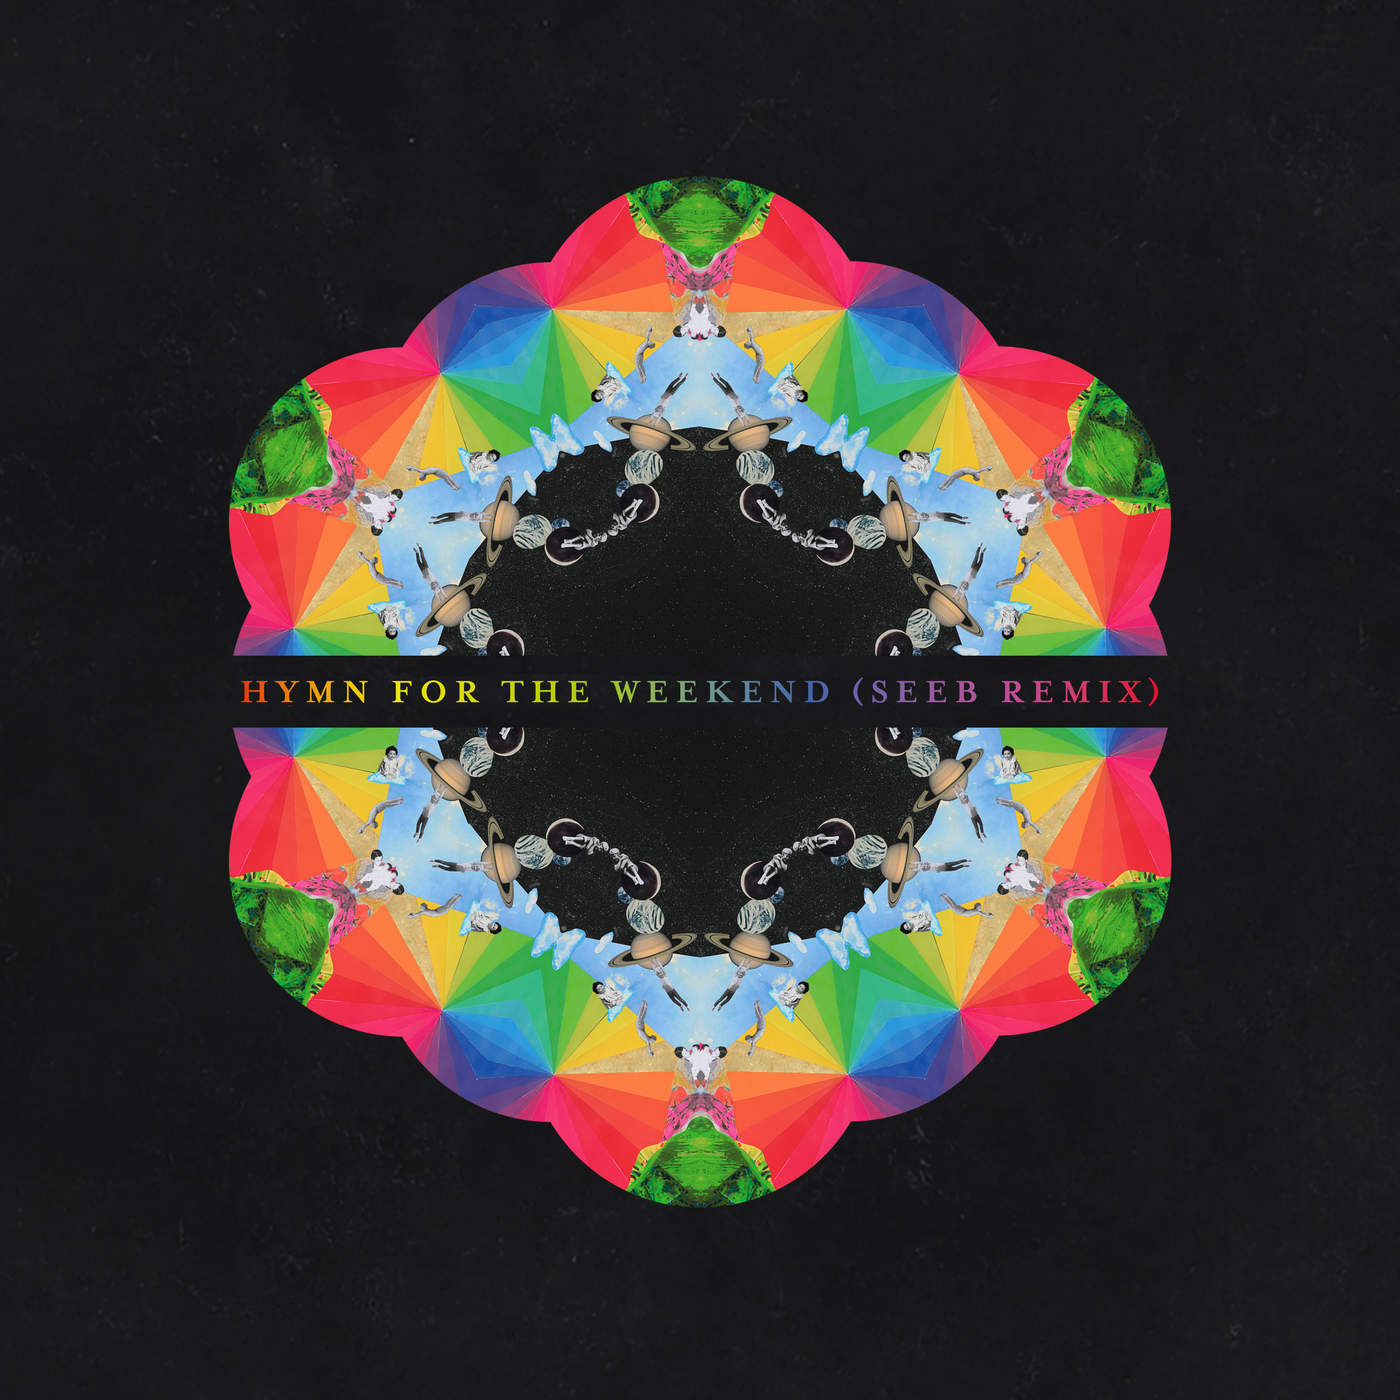 Coldplay - Hymn for the Weekend (SeeB Remix) - Single Cover